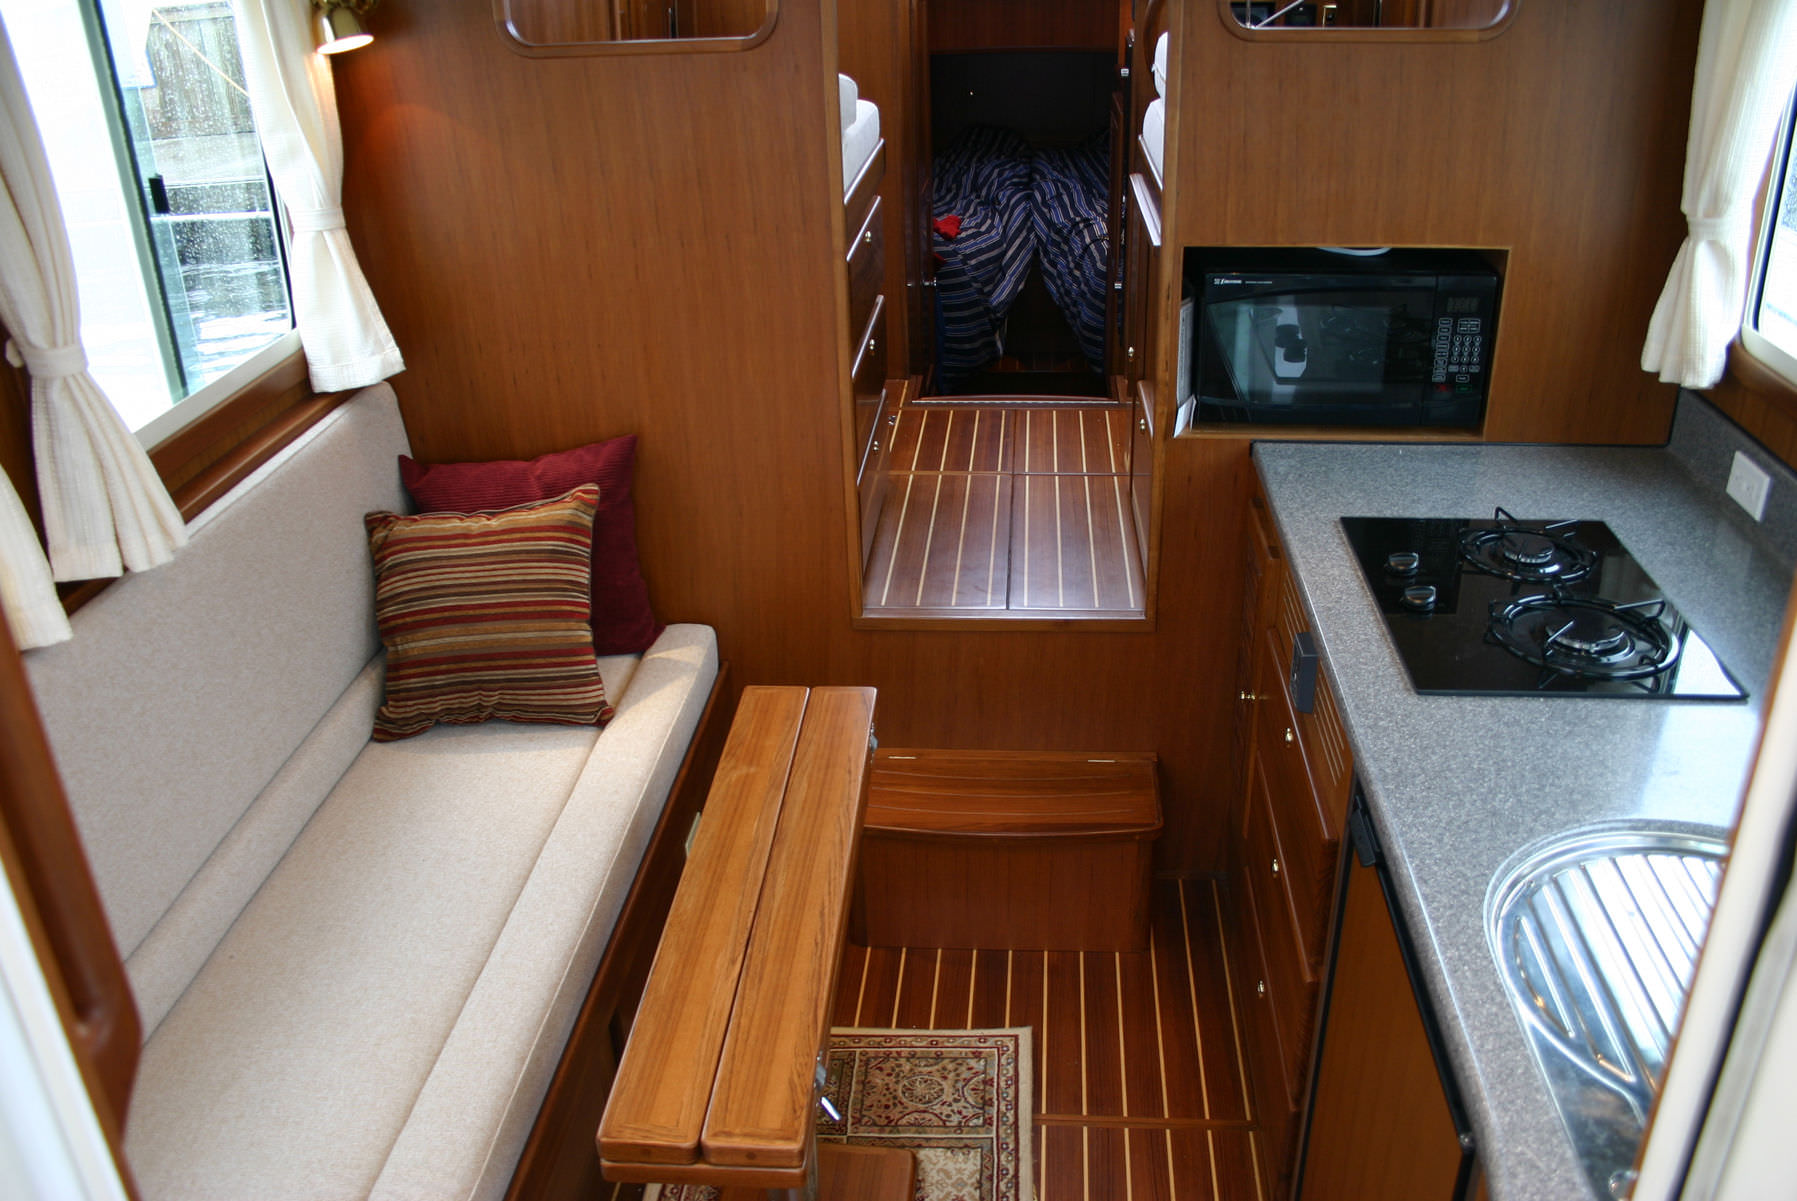 Trailer Trawler 28 - Power Cruiser/Trawler Yacht - Boat Plans ...